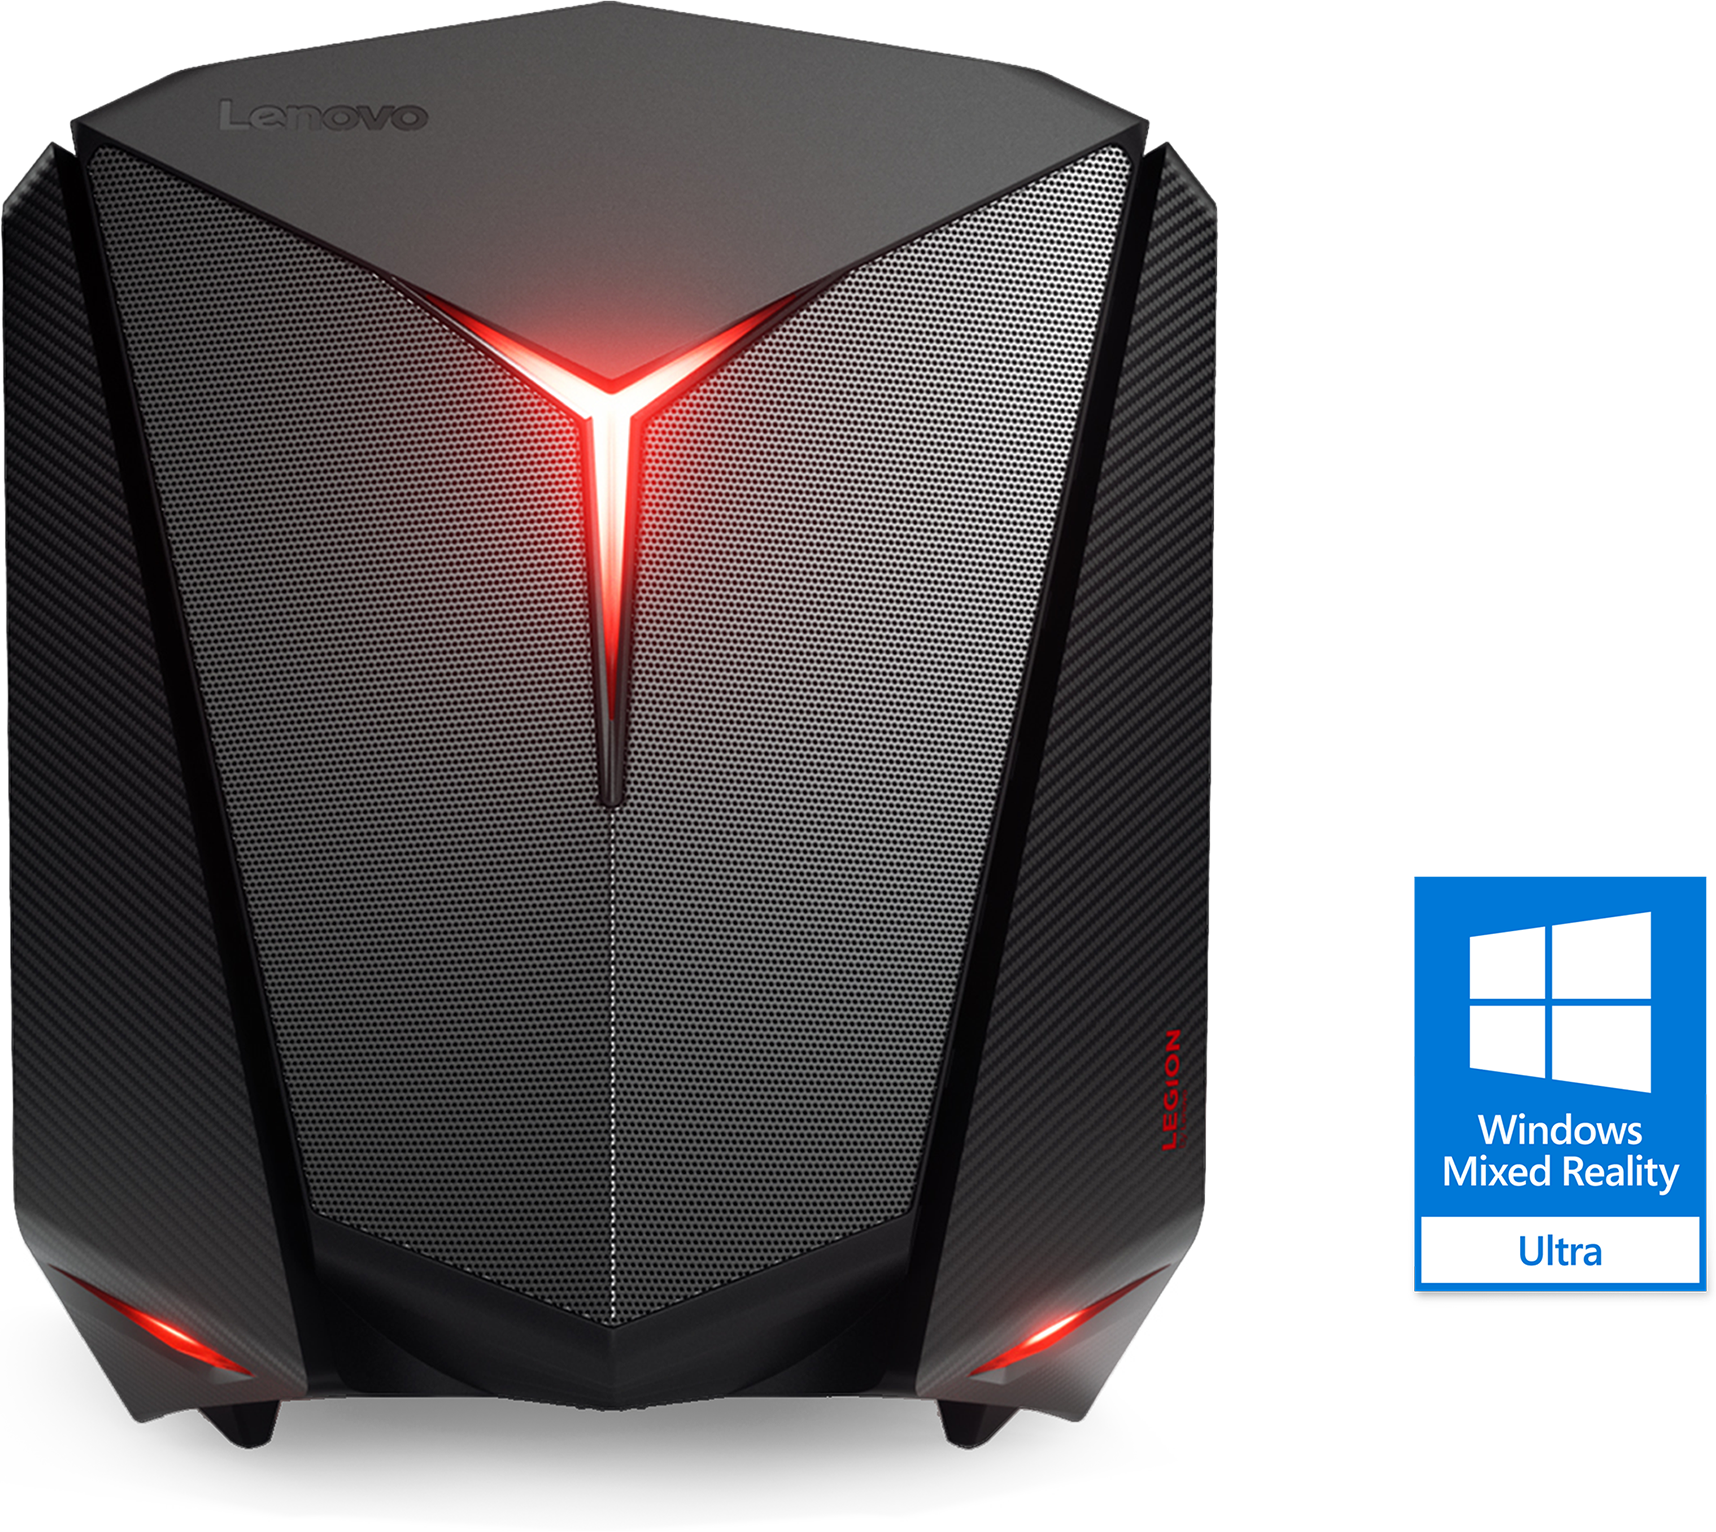 Lenovo Ideacentre Y720 Cube 90H20037US Gaming Desktop Deal